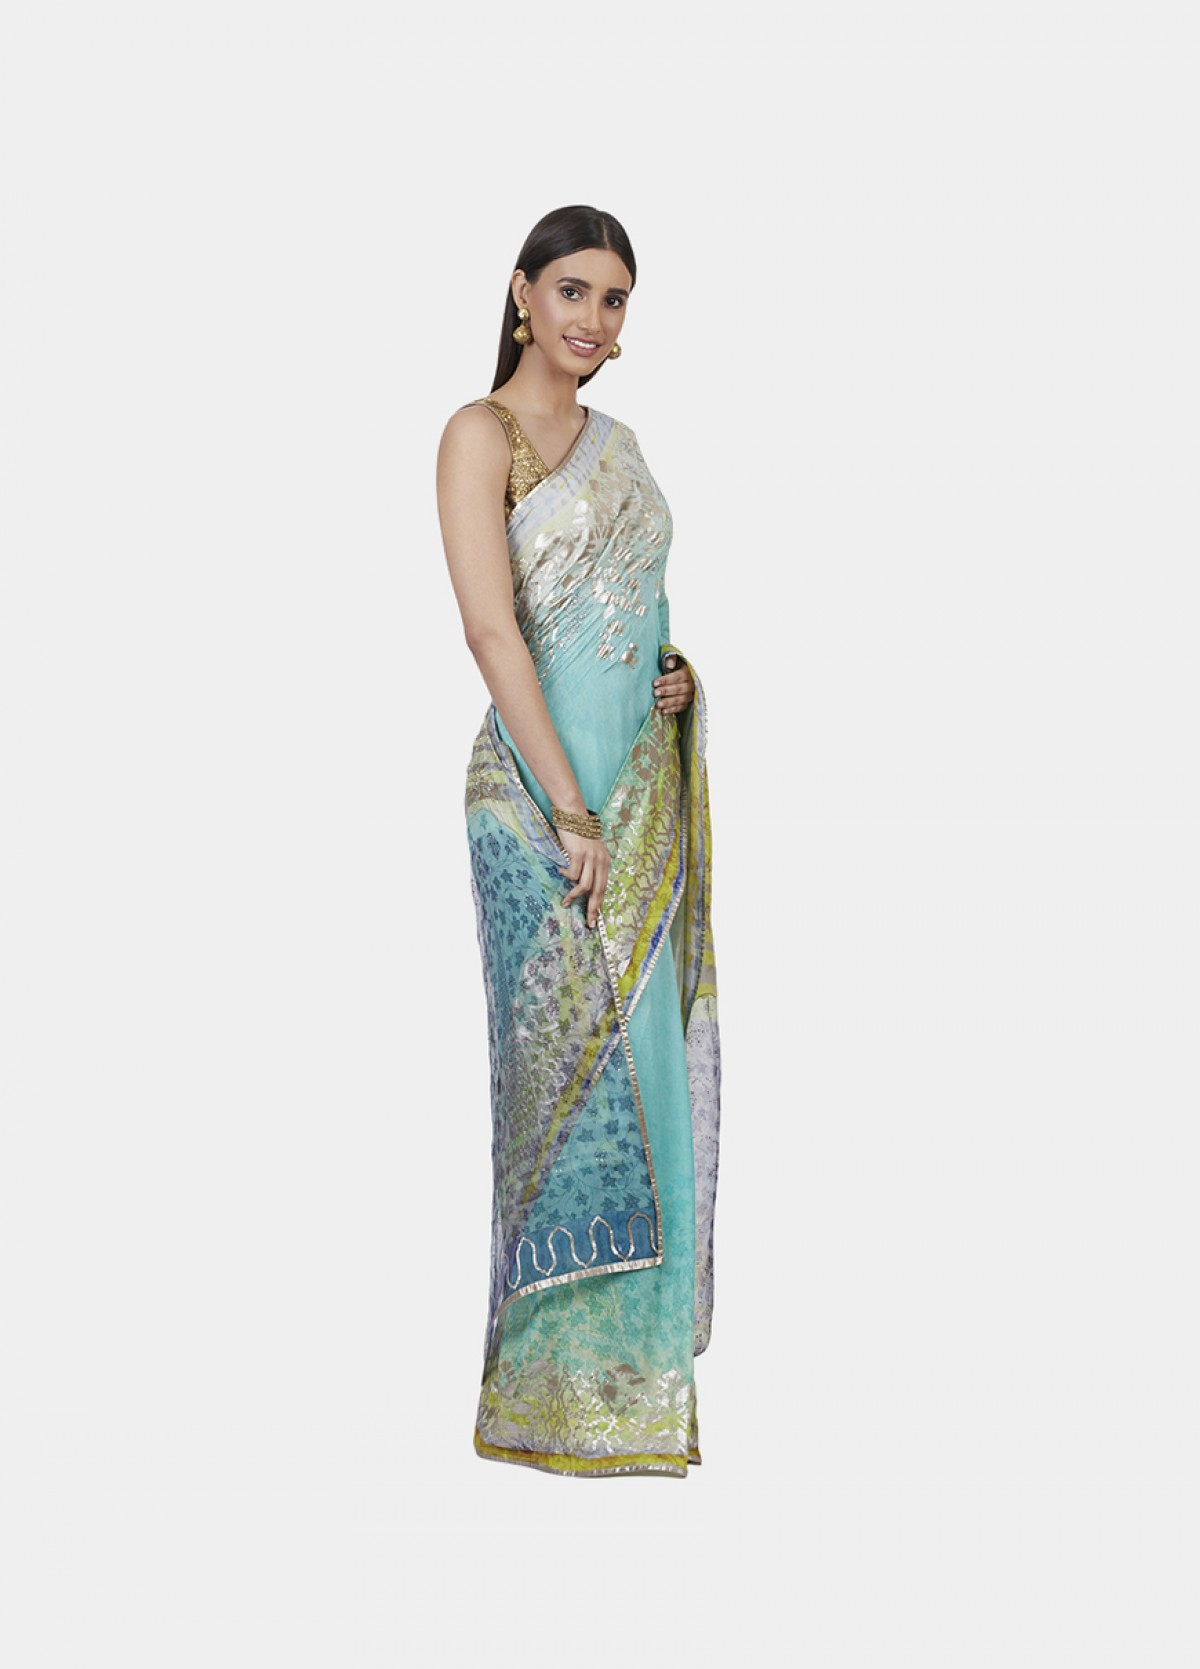 The Psychedelic Blooms Sari